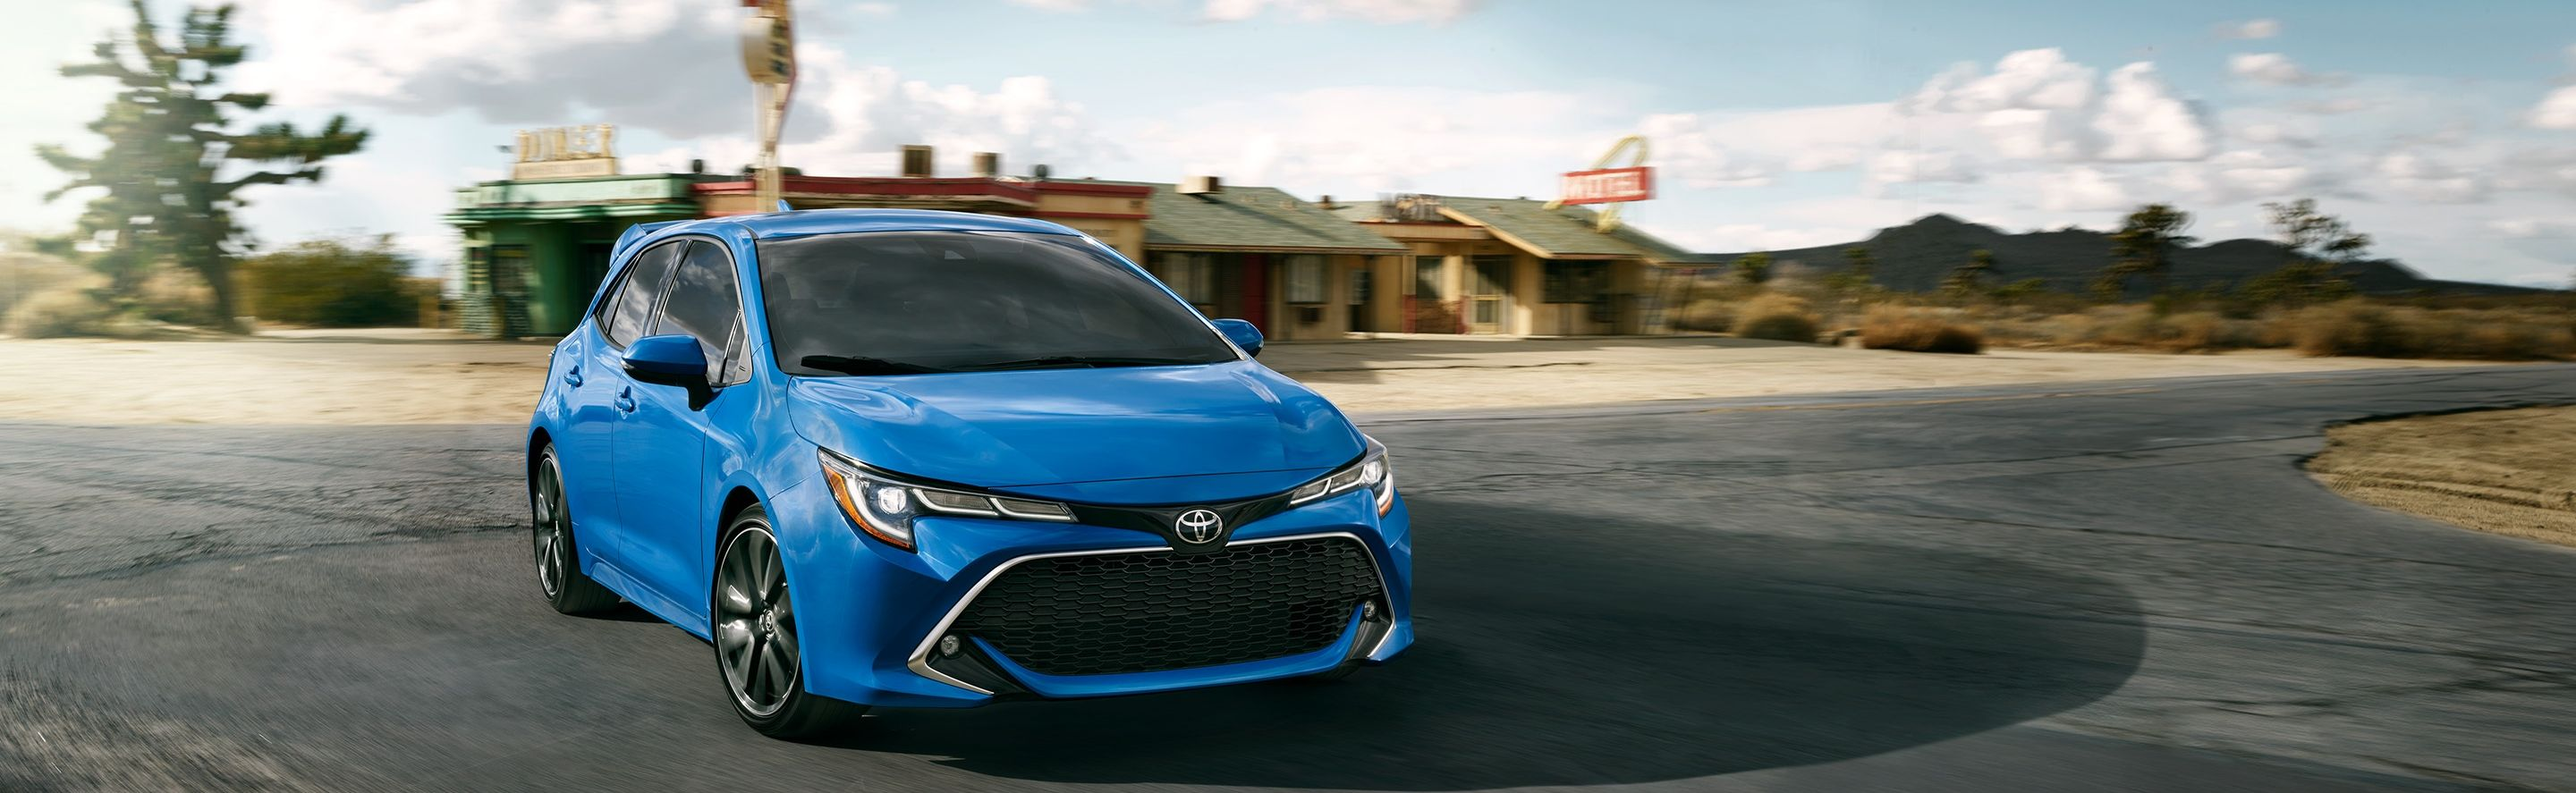 2019 Toyota Corolla Hatchback for Sale near Downers Grove, IL